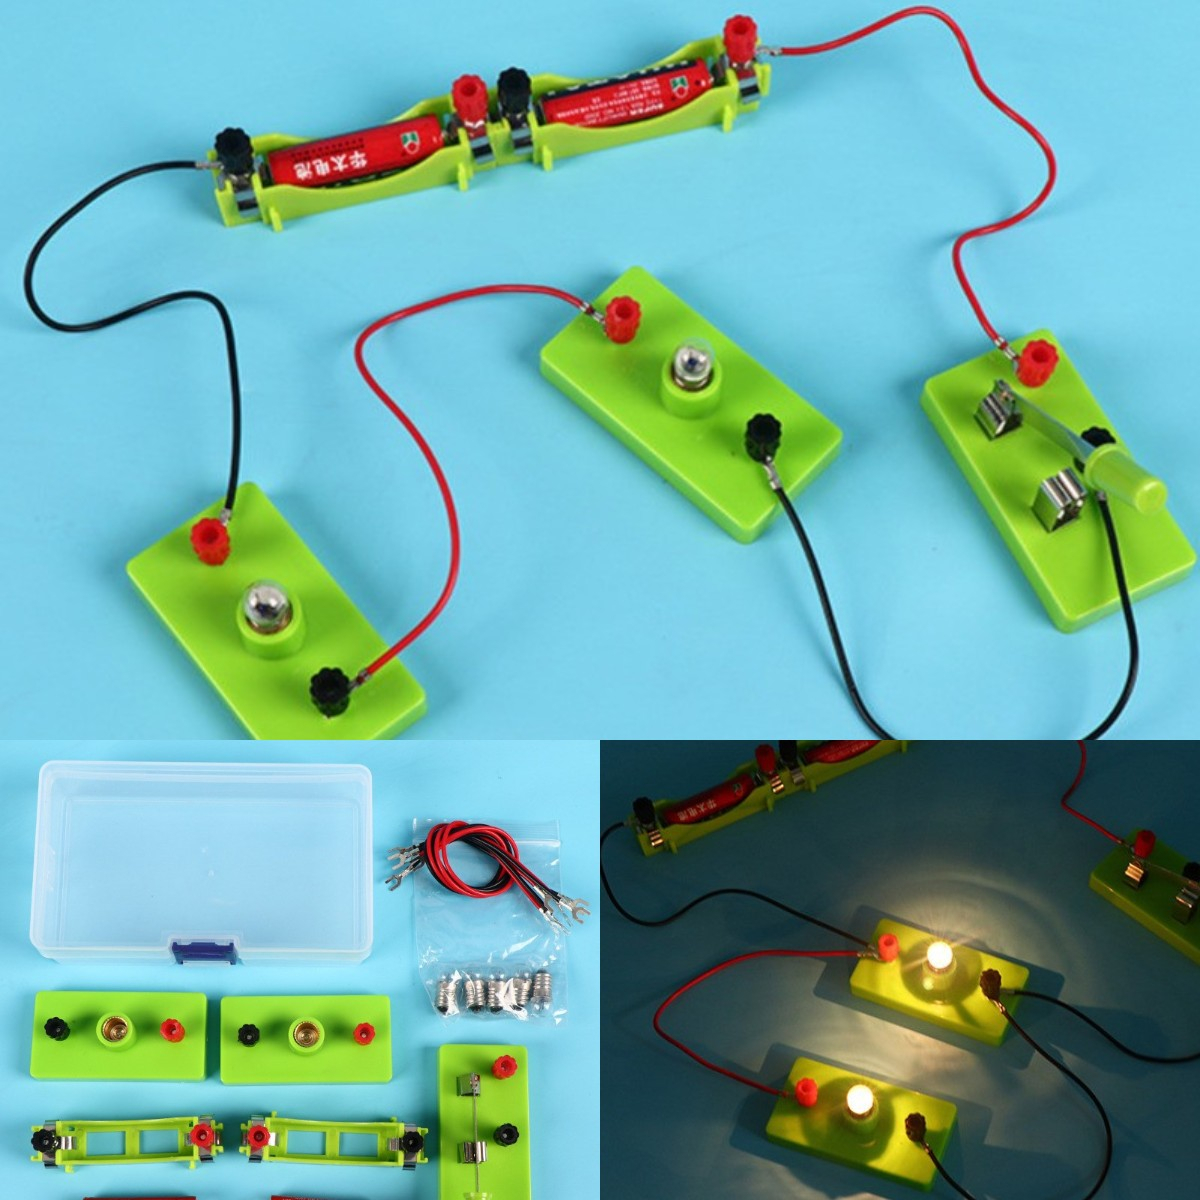 DIY Basic Circuit Electricity Learning Kit Physics Educational Toys For Children STEM Experiment Teaching Hands-on Ability Toy